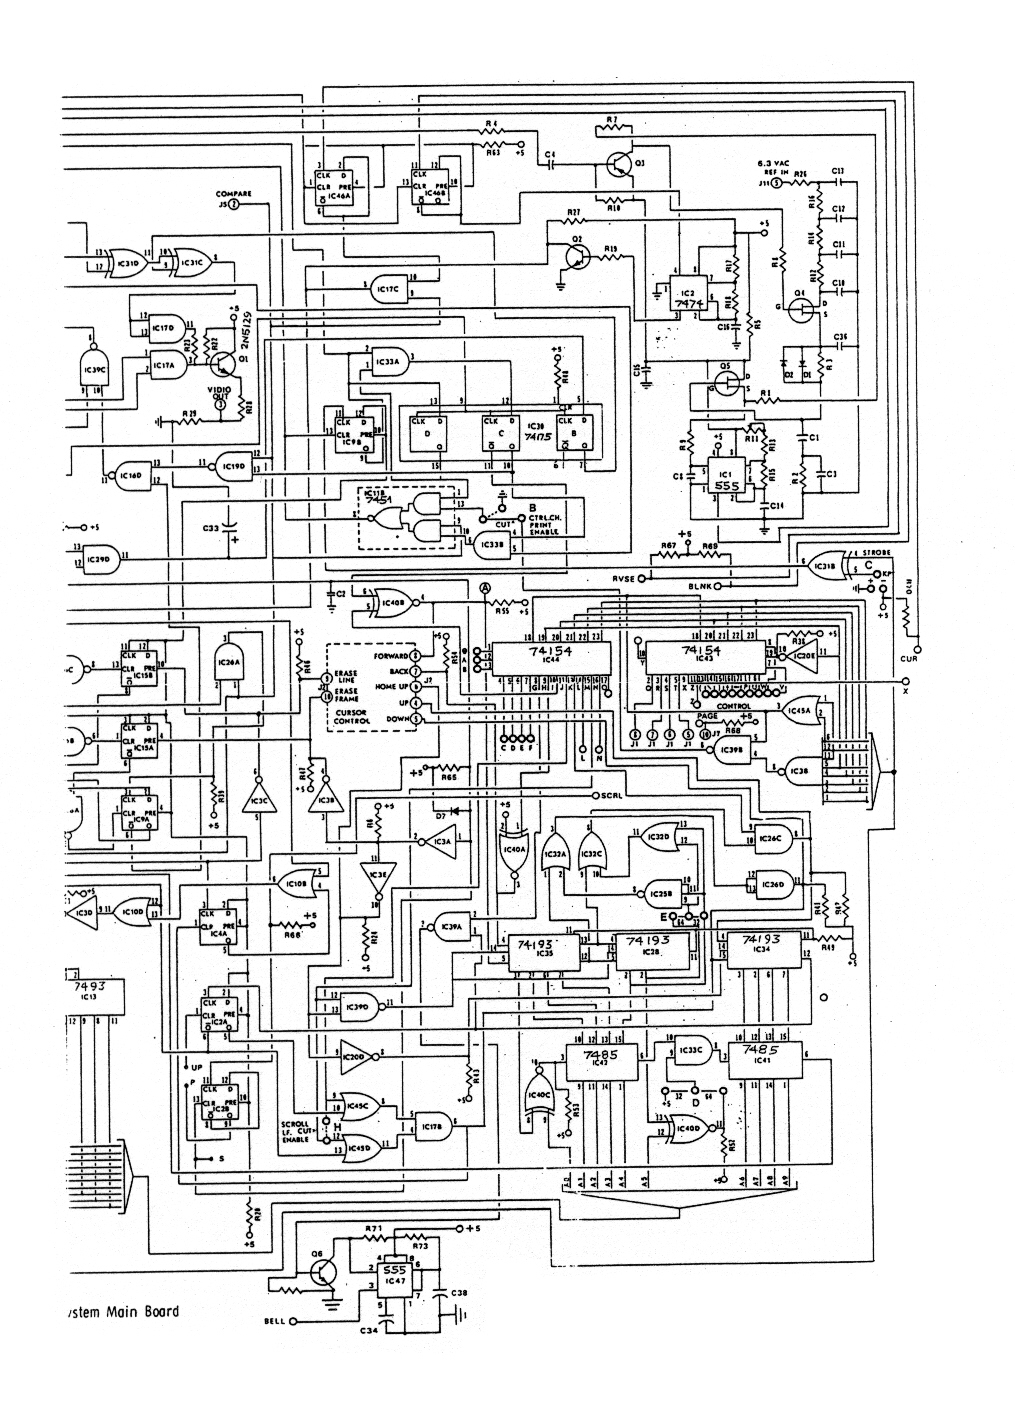 1086 Wiring Diagram